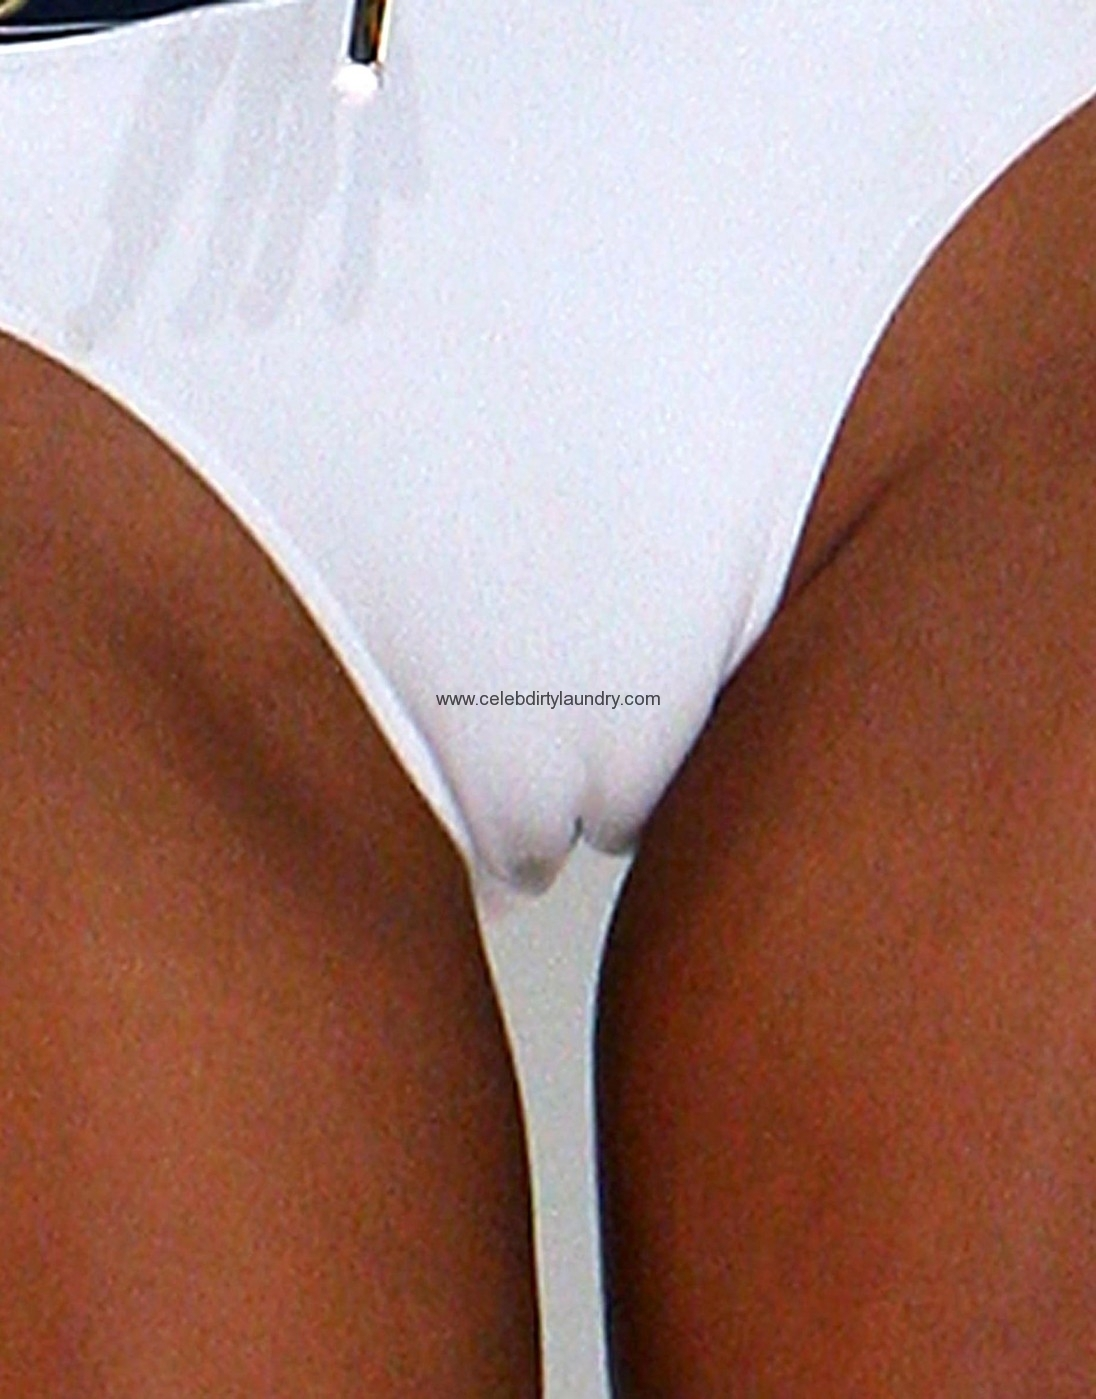 Feb 1, 2010 very best camel toe picture galleries ever on the net